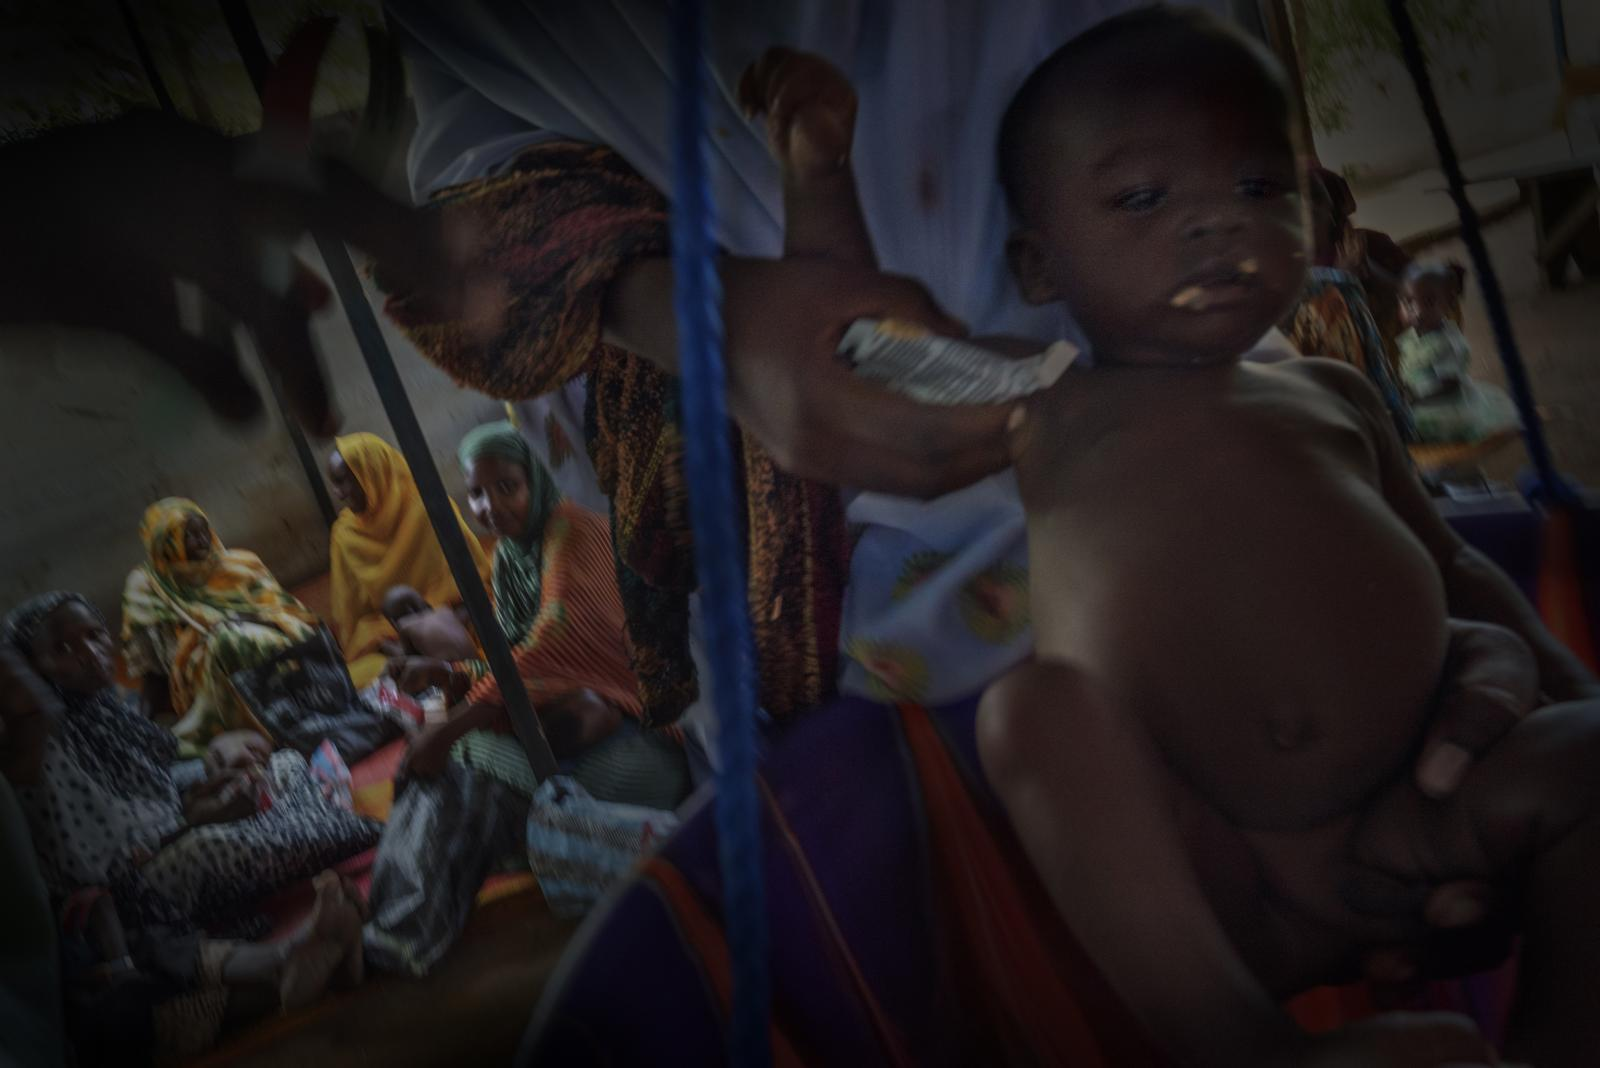 Members of the NGO Doctors Without Borders weigh a little boy in a mobile clinic in the region of Bokoro (Chad).